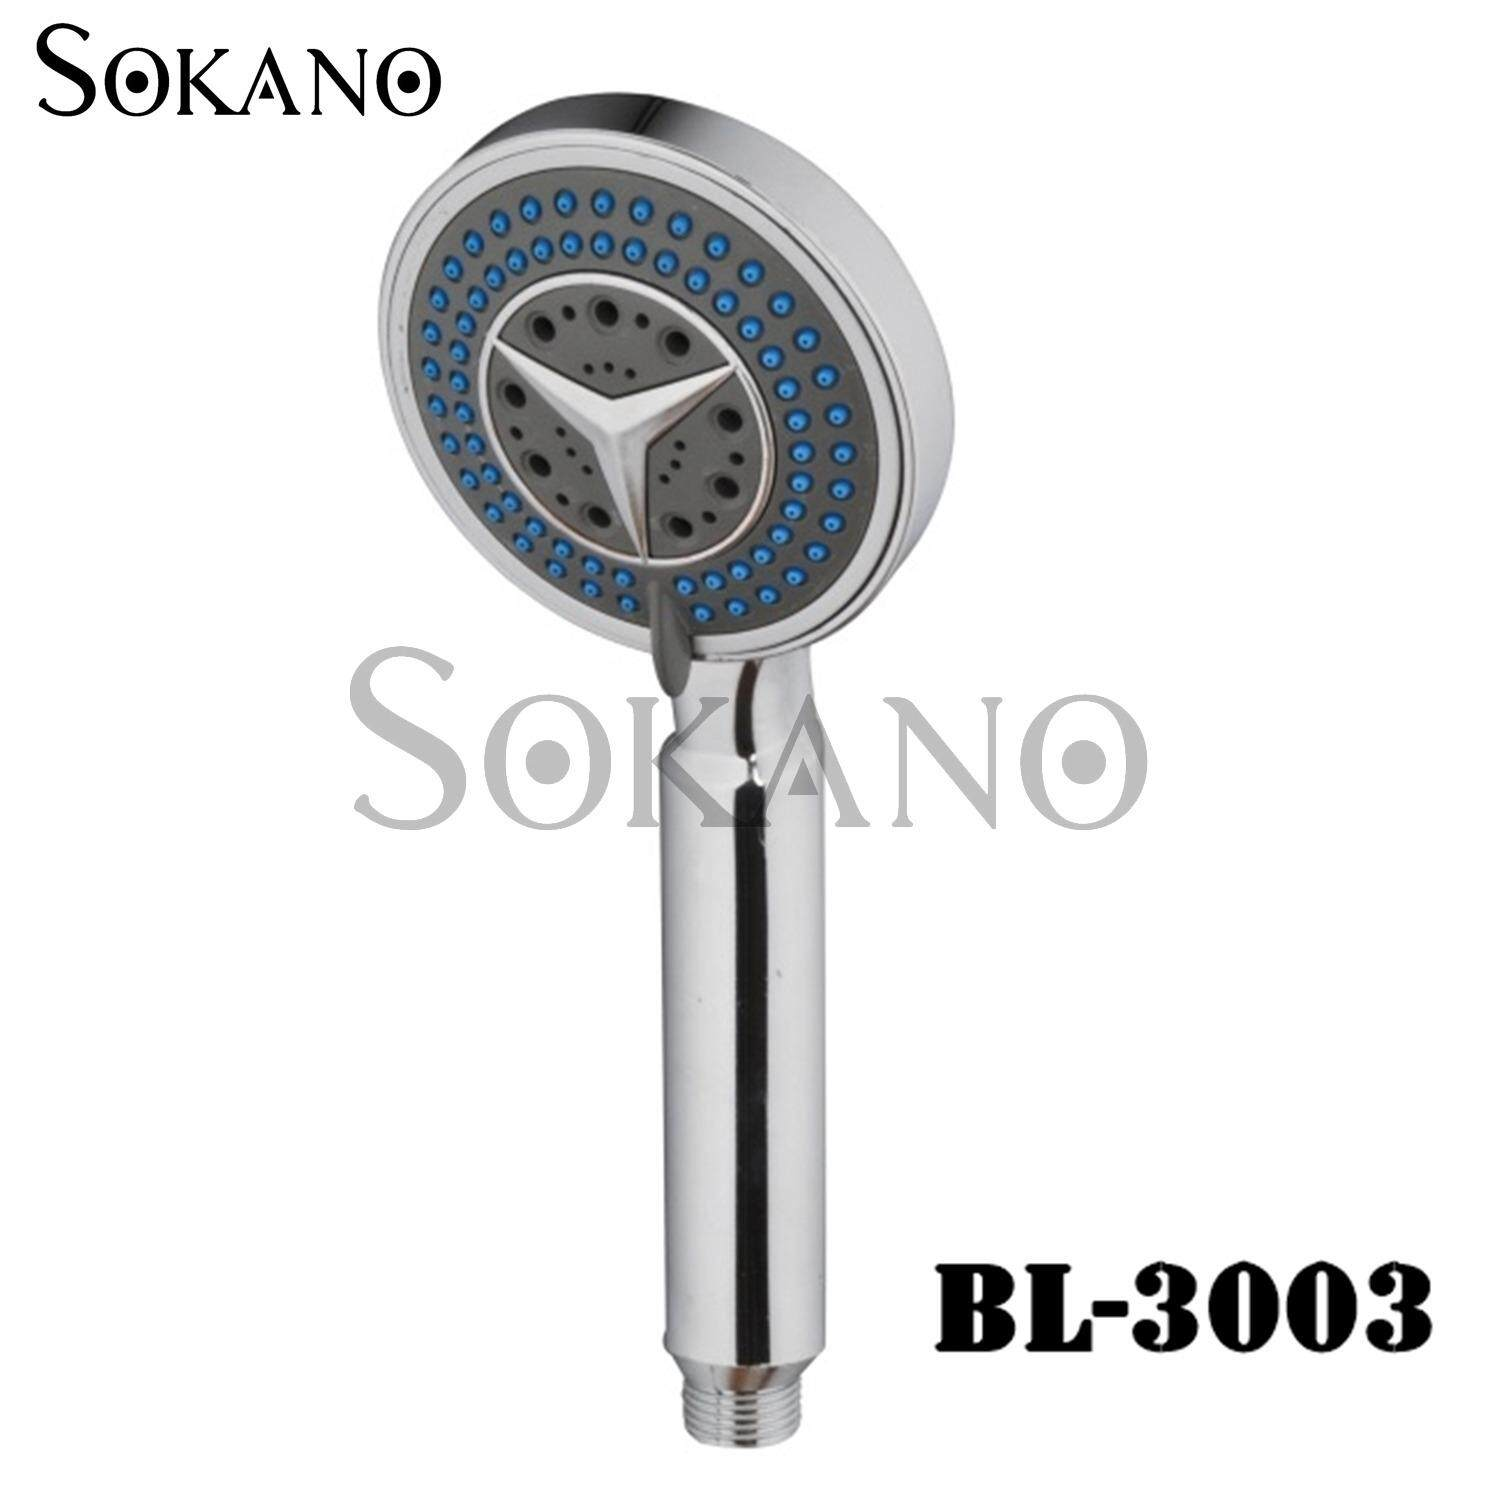 SOKANO BL-3003 Premium Water Saving Shower Sprayer Head (Compatible with Existing Shower Part)